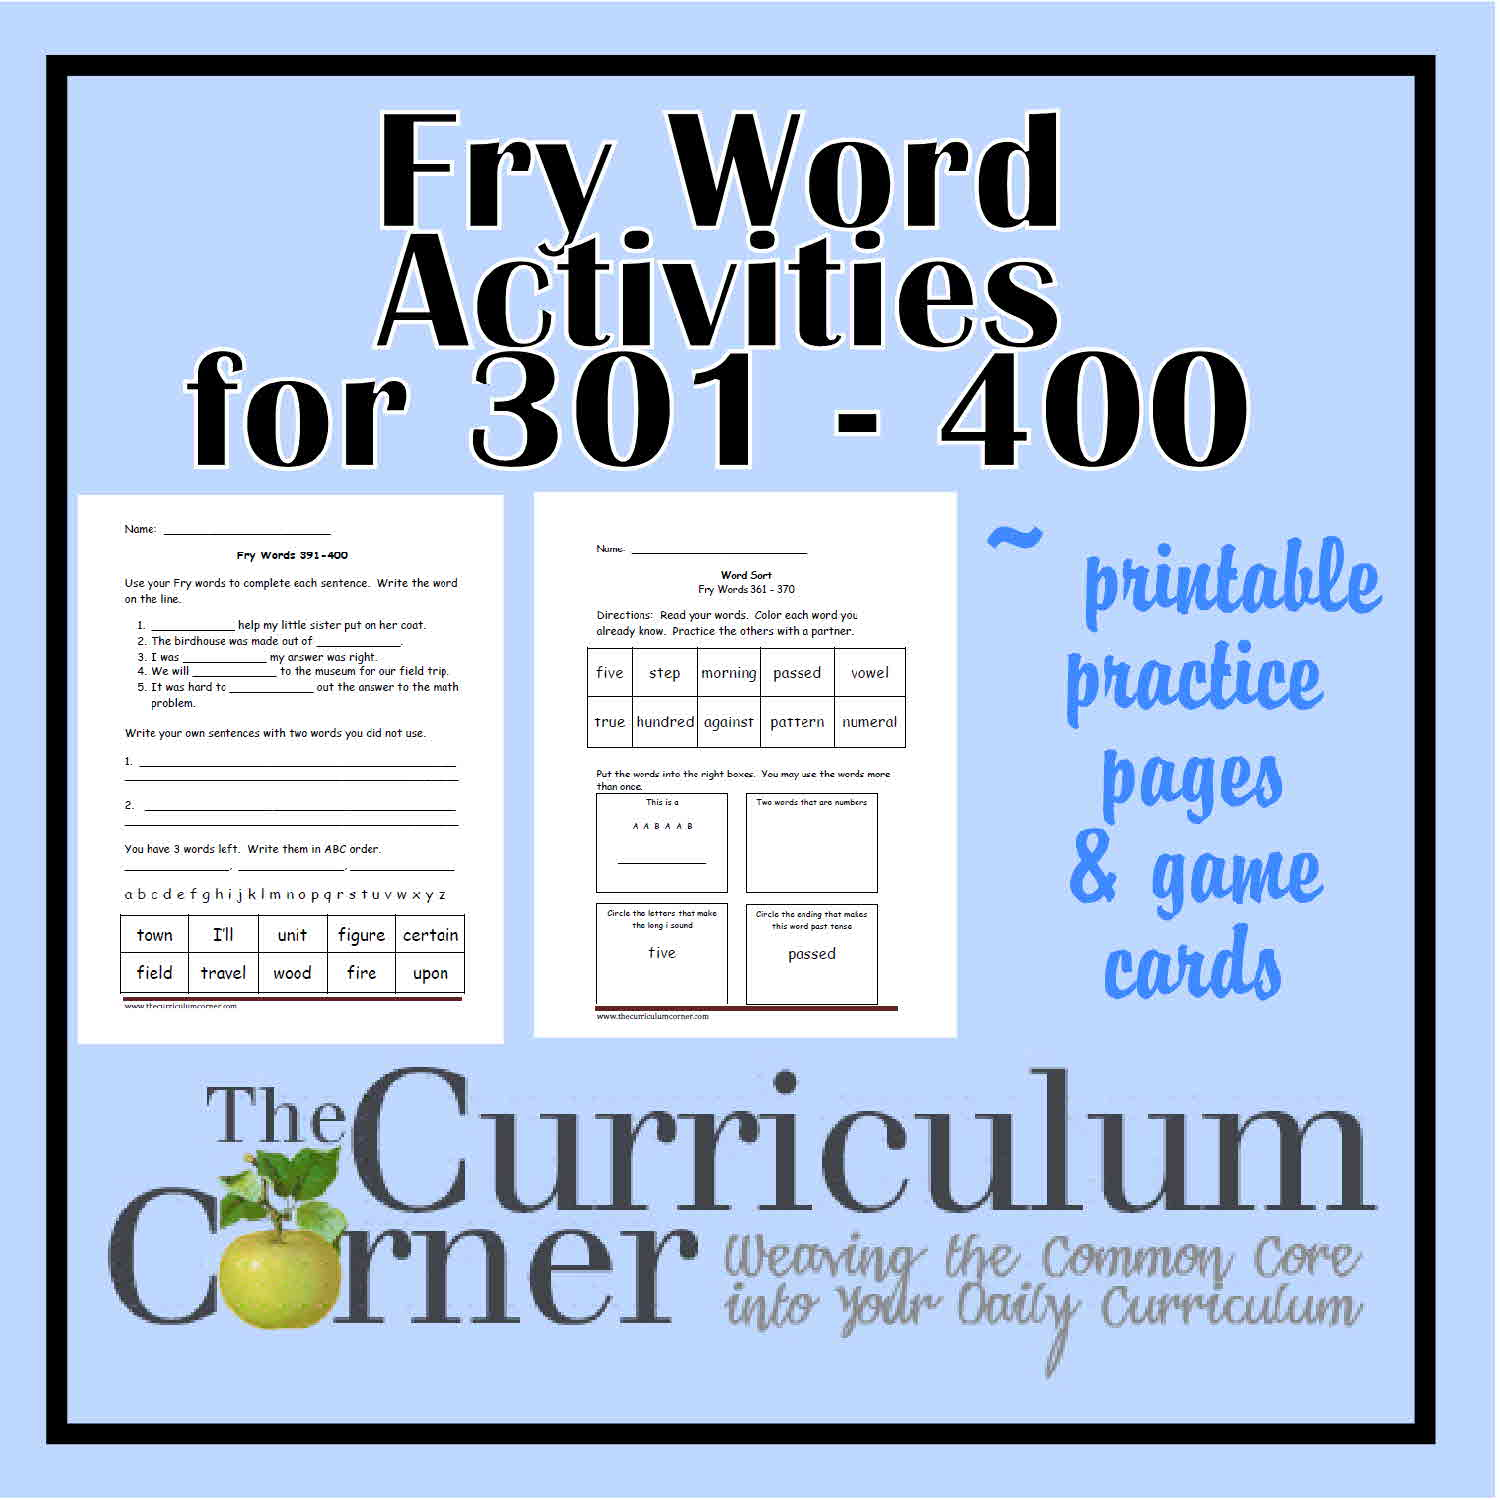 worksheet Fry Words Worksheets fry fourth hundred printables 301 400 the curriculum corner 123 below you will find activities designed to give students practice with 100 words they have been divided into group